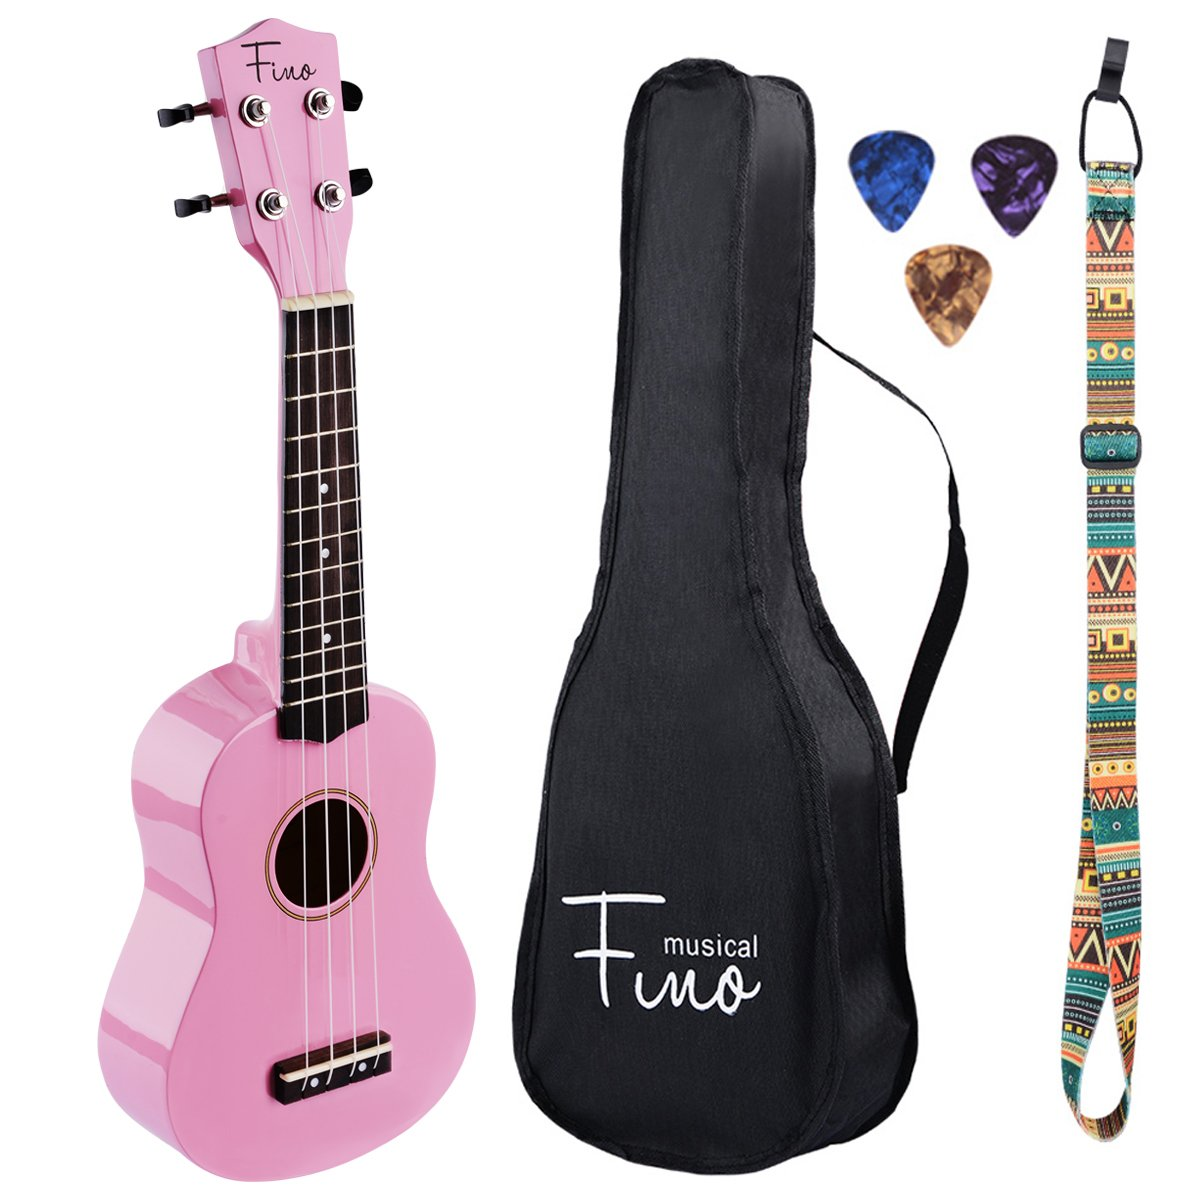 FINO Ukulele Kit for Beginners Rainbow Series,Soprano Ukulele Beginner Pack-21 inch w/Gig Bag,Strap and Picks,Small Guitar for Kids 5-8(Pink) by FINO